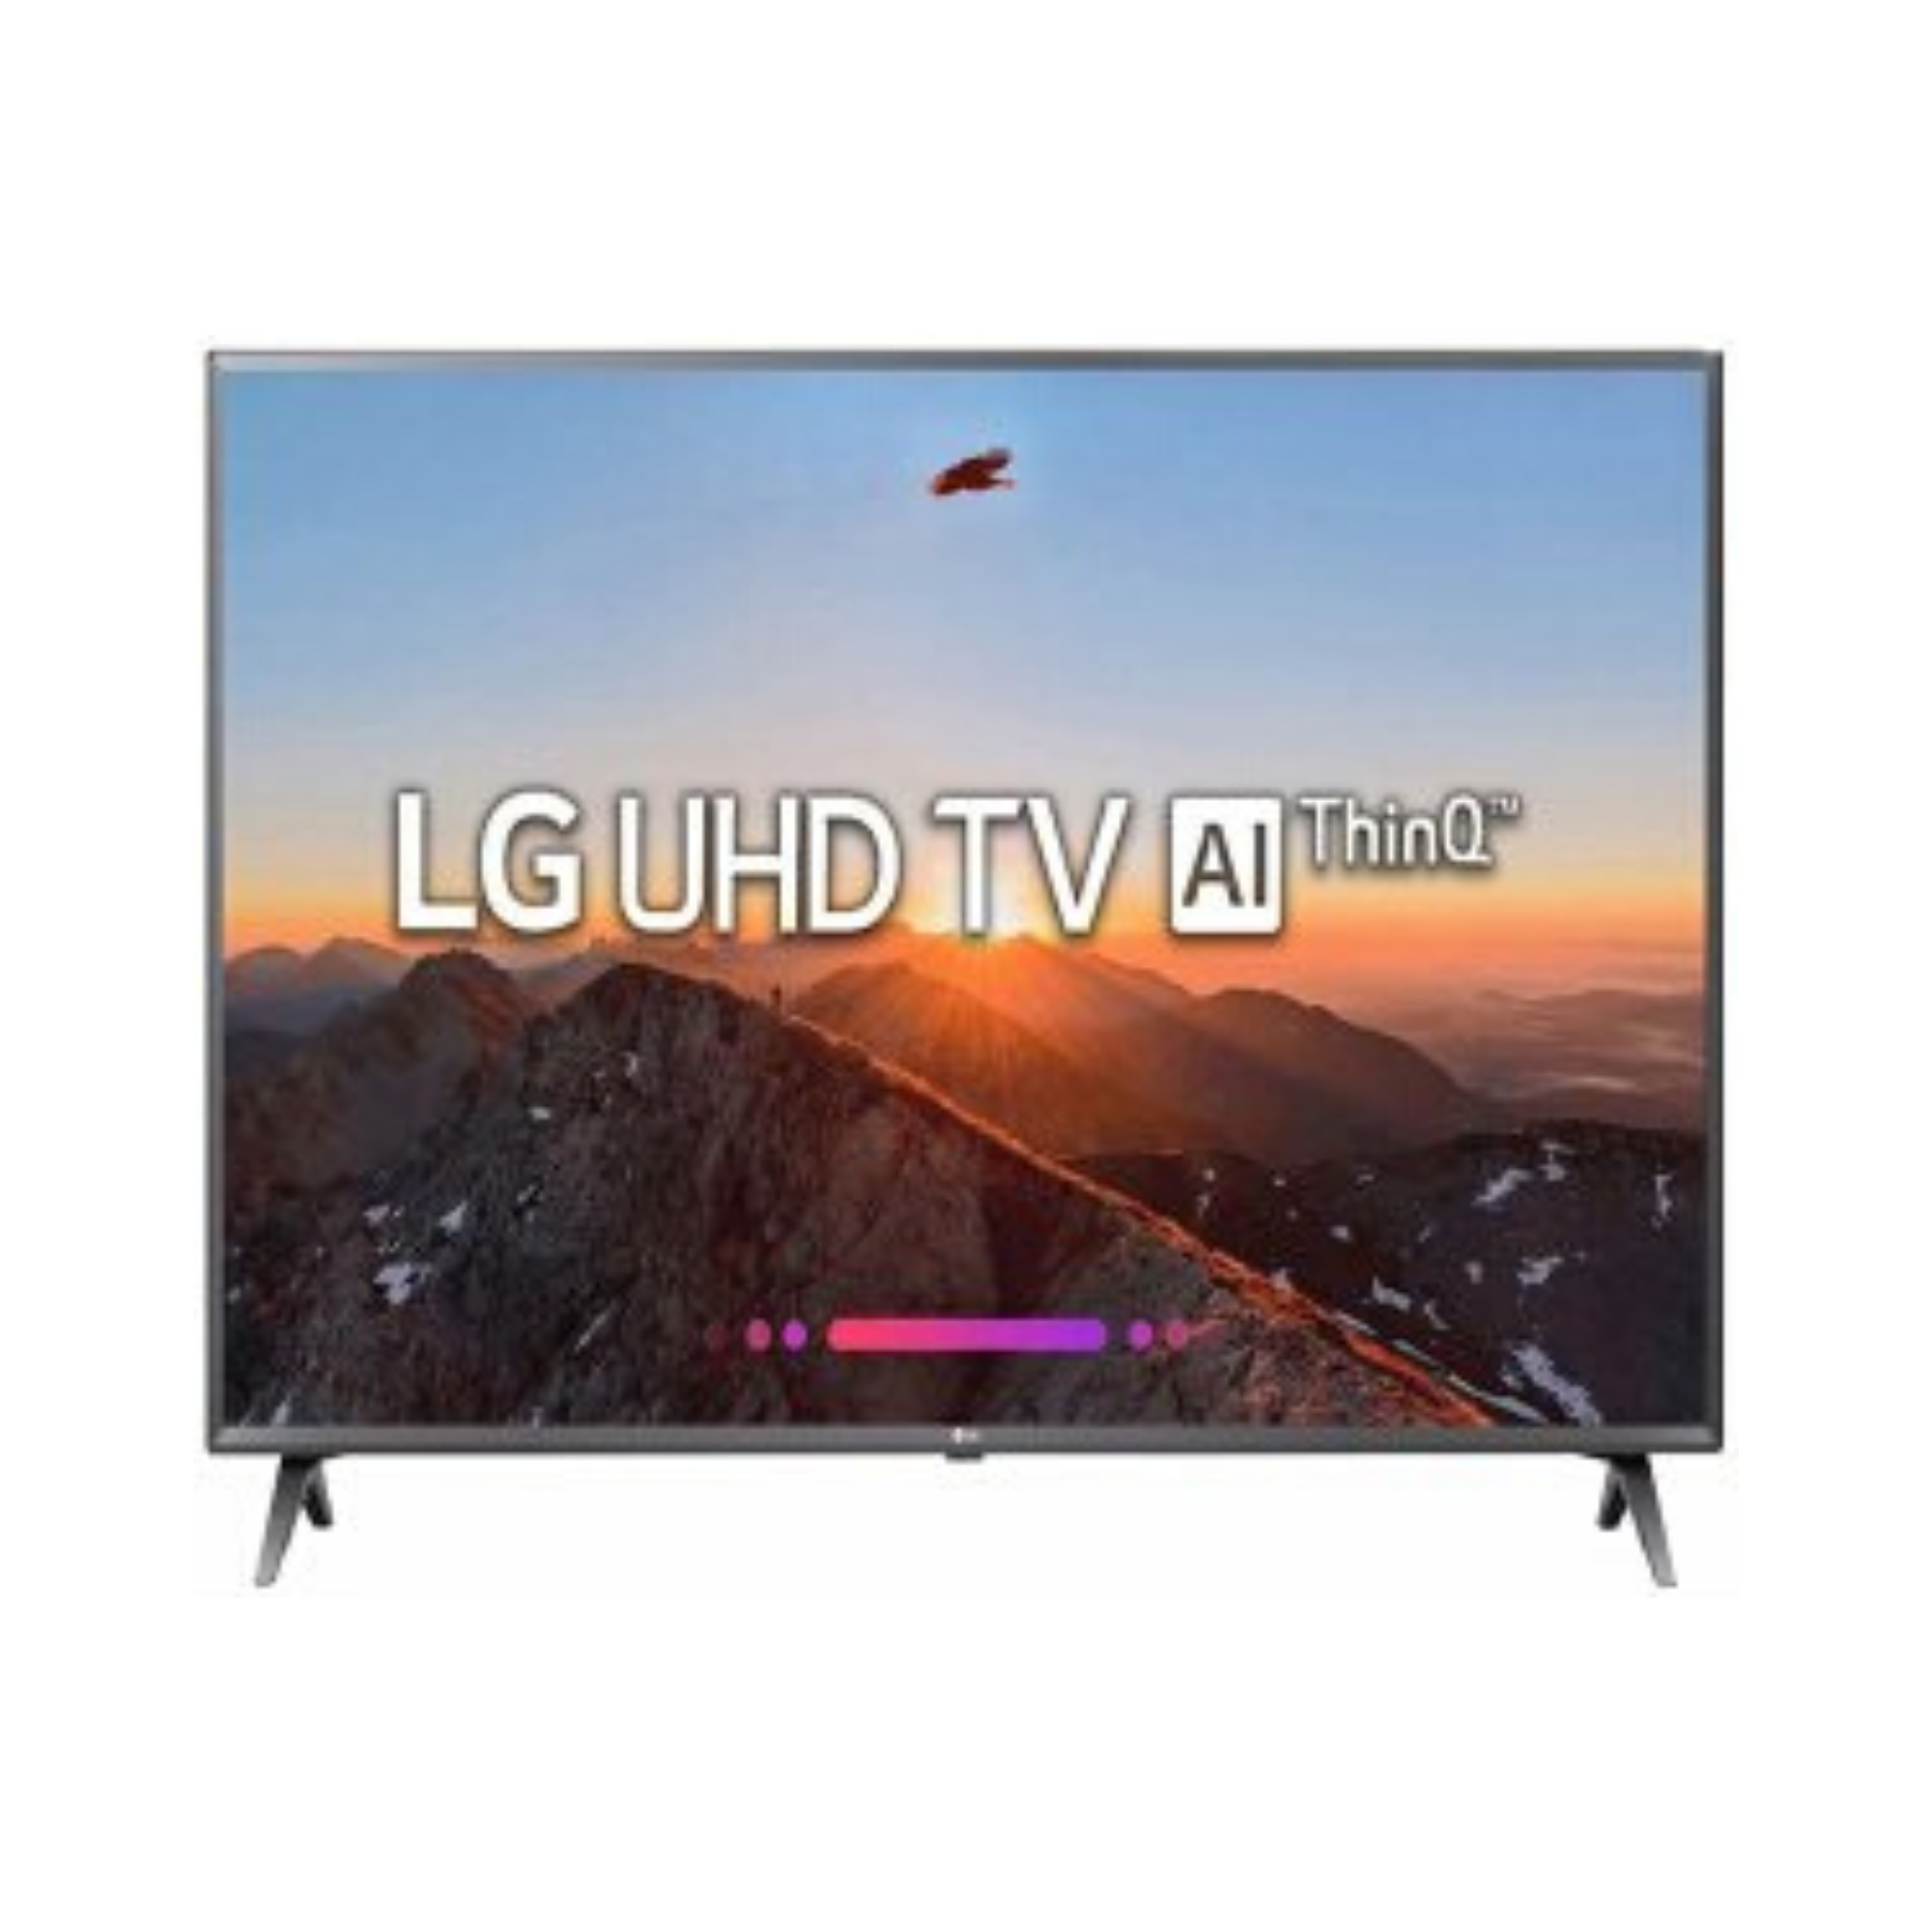 LG 108 cm (43 Inches) 4K UHD LED Smart TV 43UK6560PTC (Black) (2018 model)